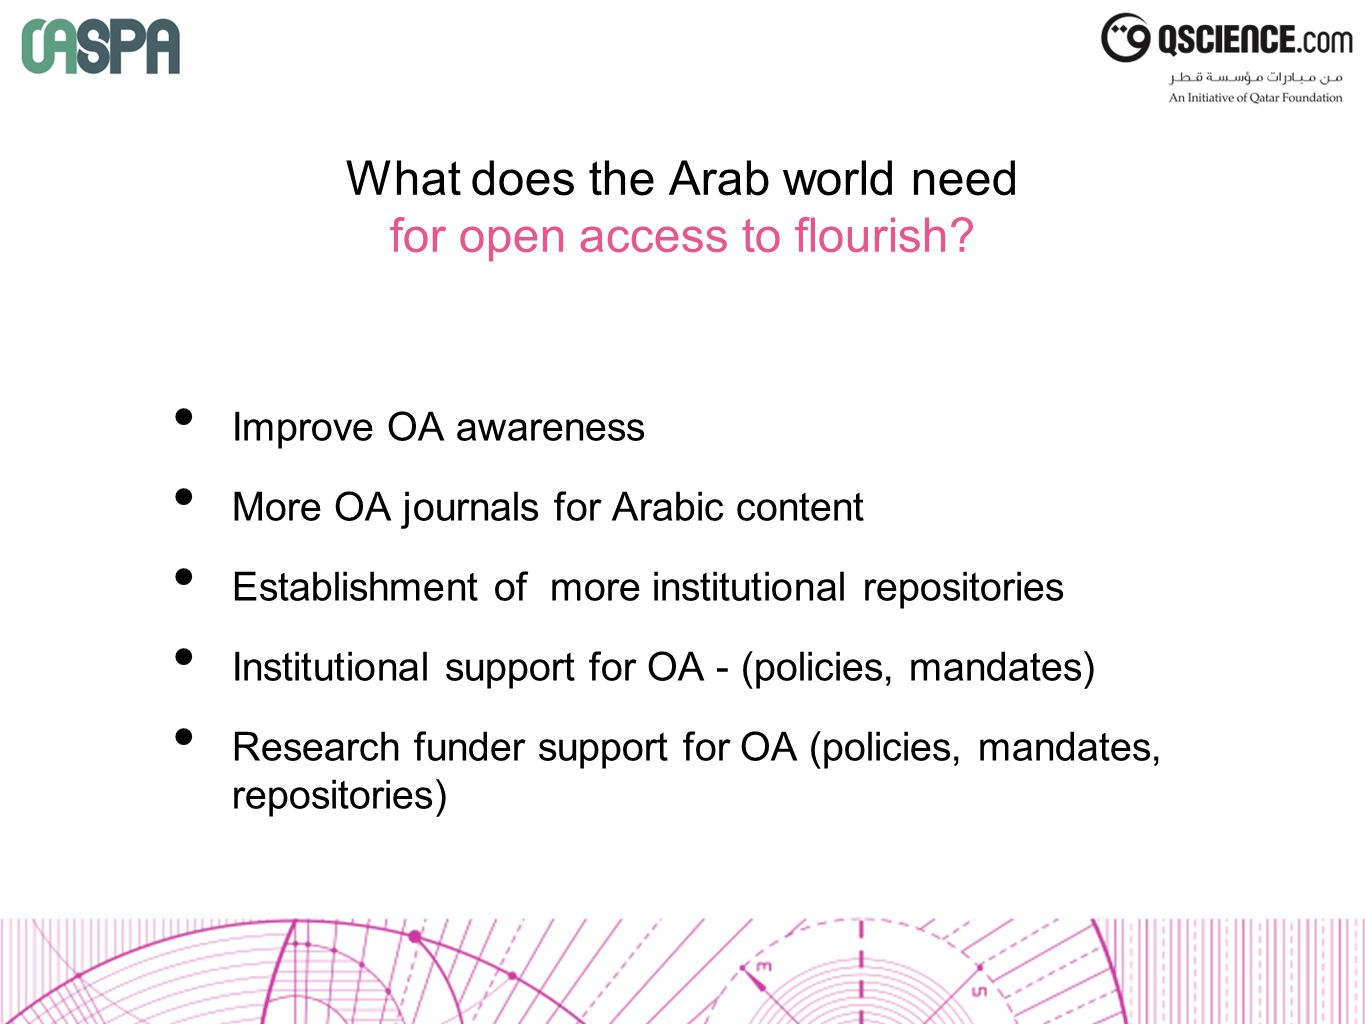 What does the Arab world need for open access to flourish.